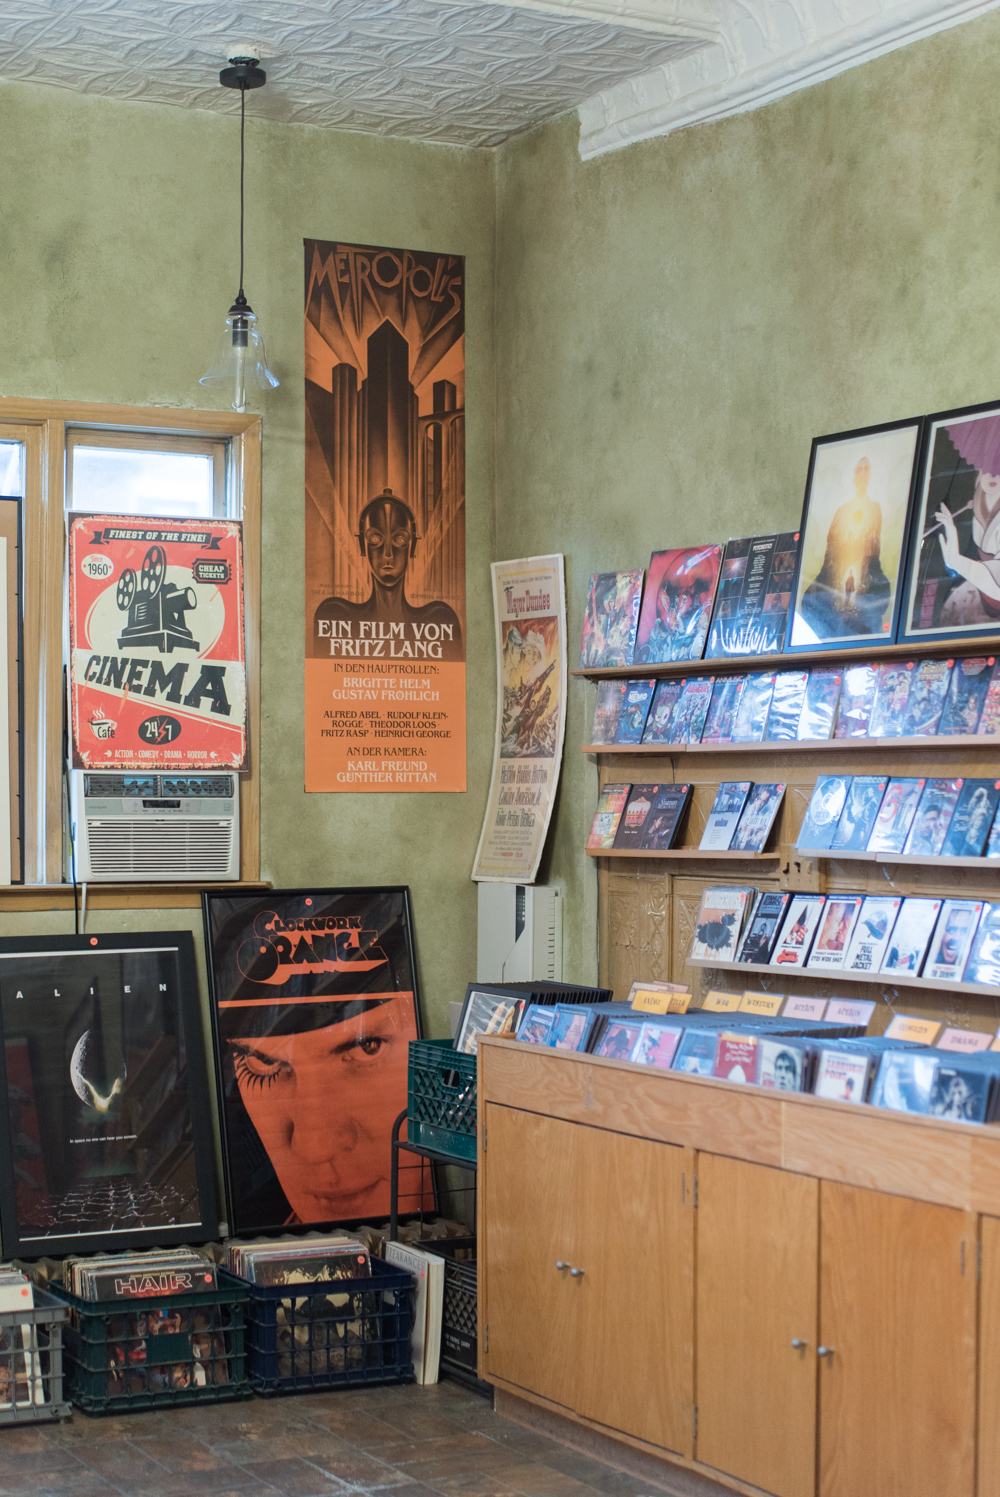 Besides movies Film Noir Cinema sells used records.